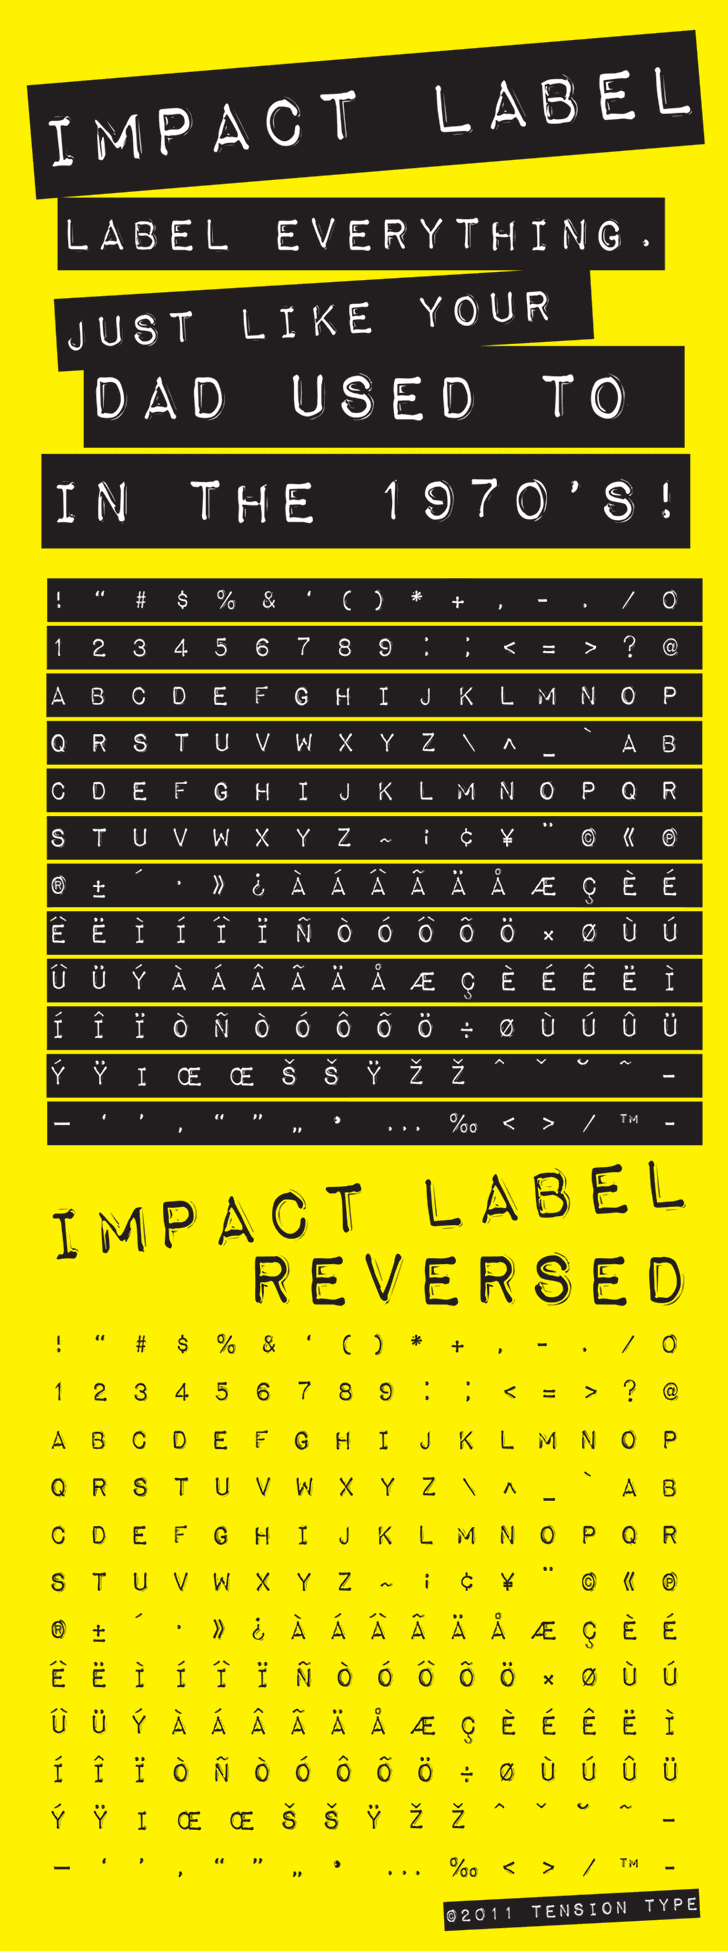 Impact Label font by Tension Type